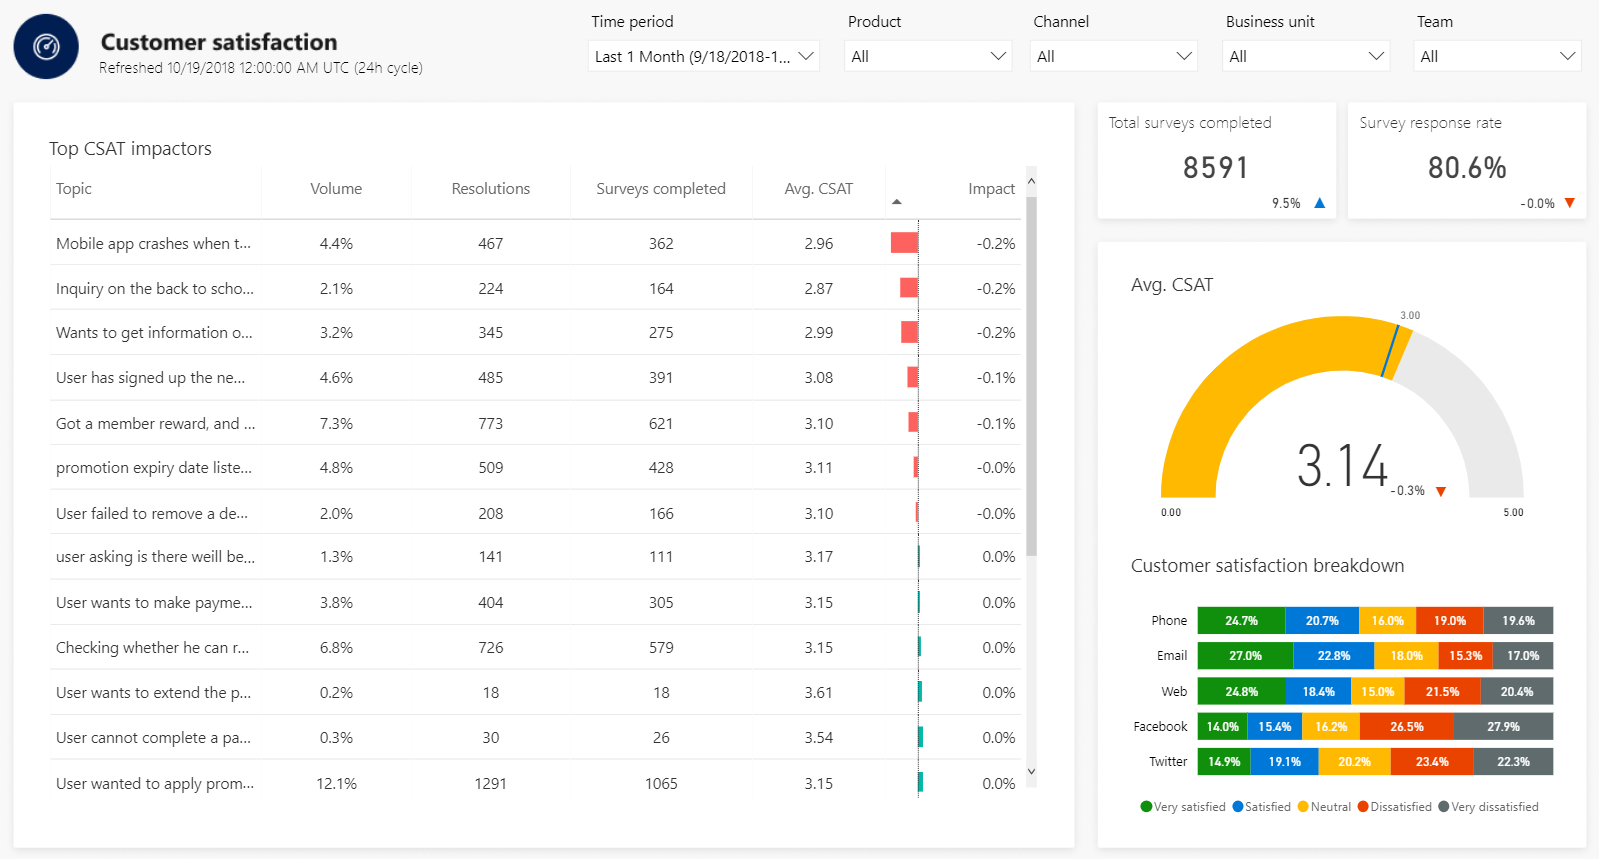 Customer Satisfaction Dashboard dashboard and metrics